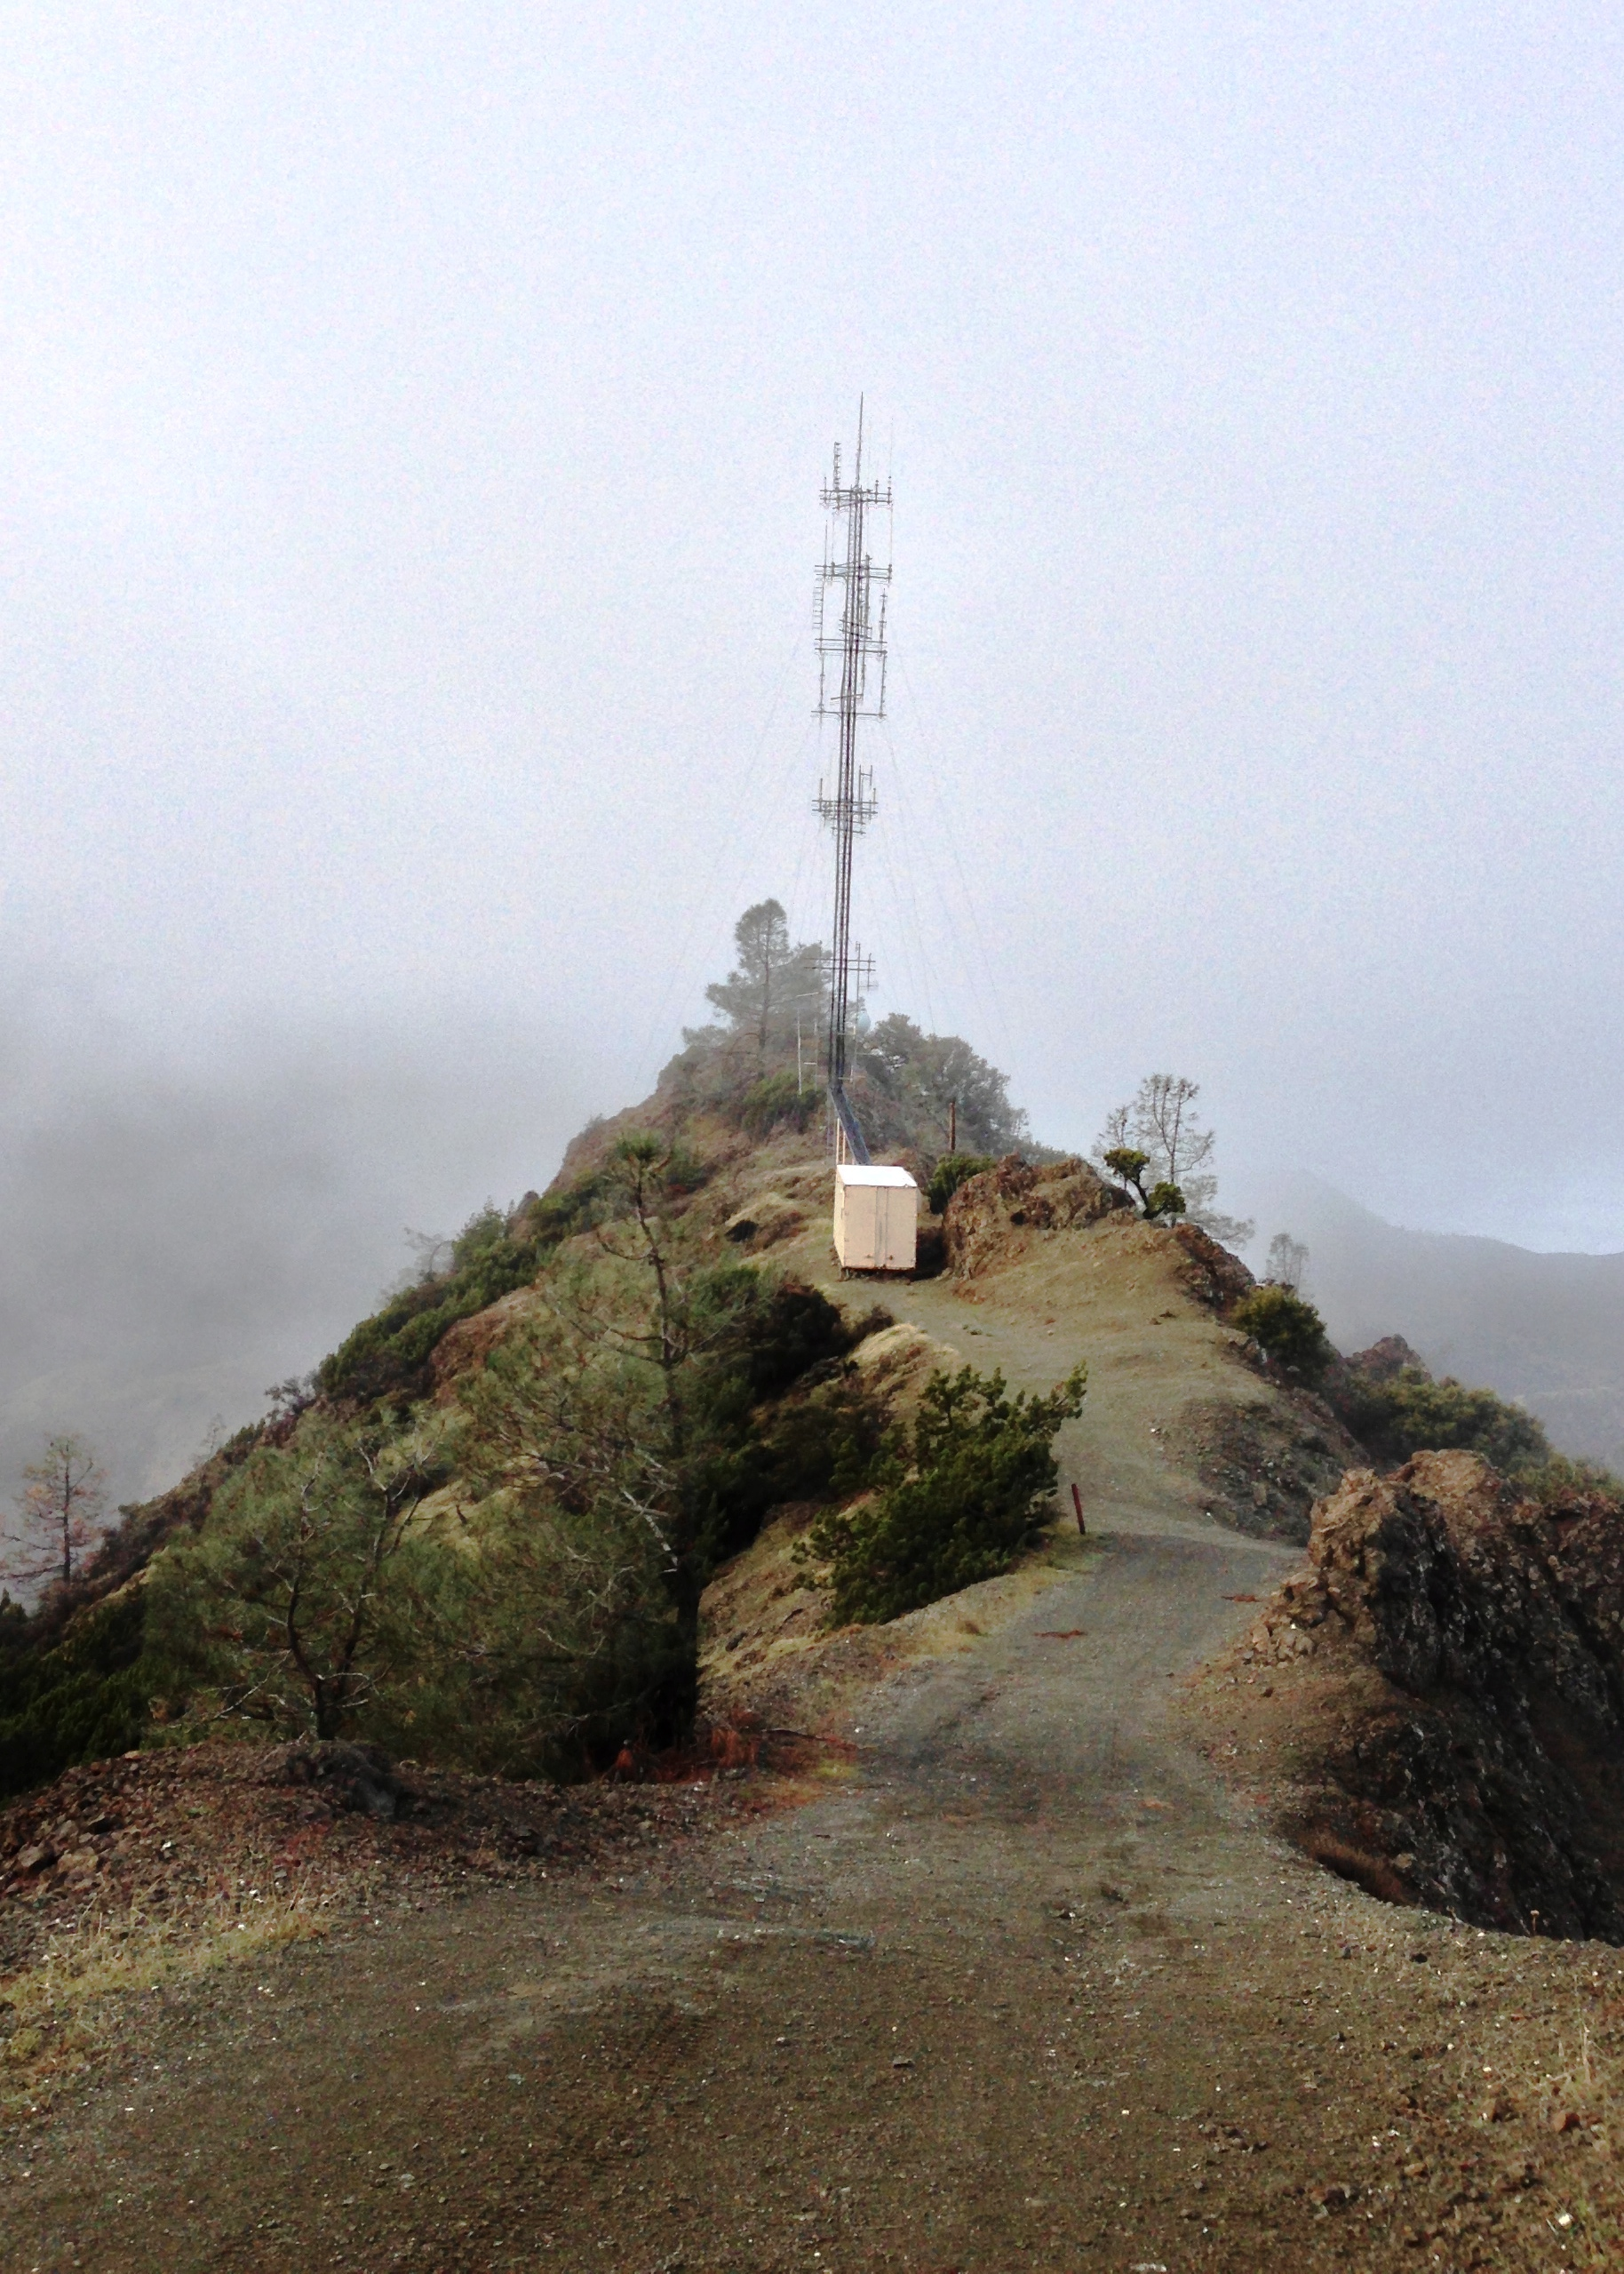 Amateur Radio tower containing K6BIV, K6MDD, W6UUU and other repeater and  communication systems